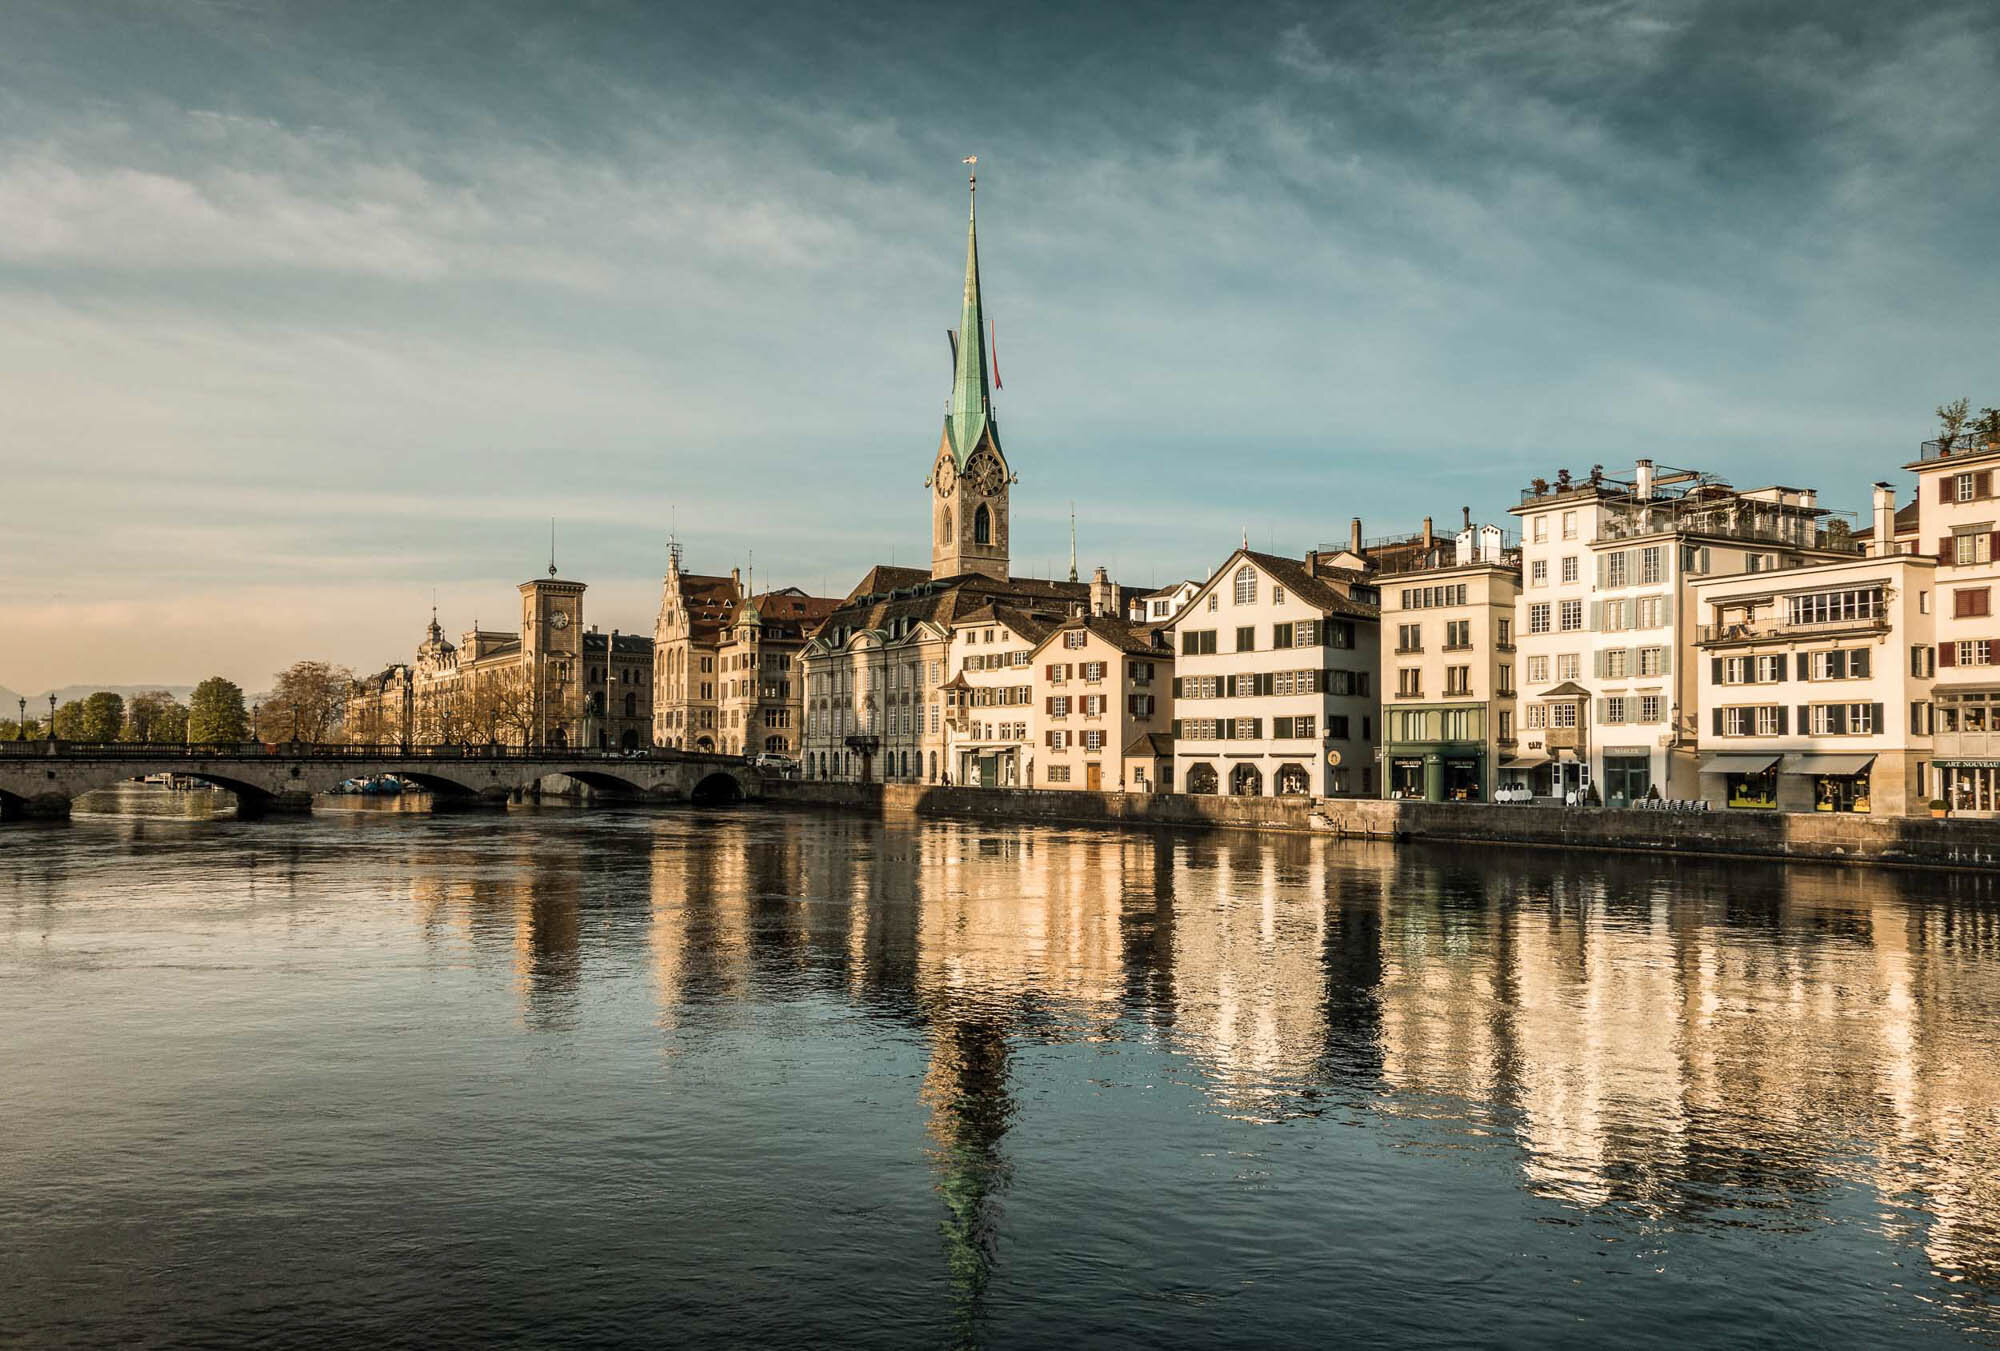 Morning mood at the Limmat overlooking the Fraumuenster, townhouse and Muensterbruecke, Zurich. Copyright by: Switzerland Tourism